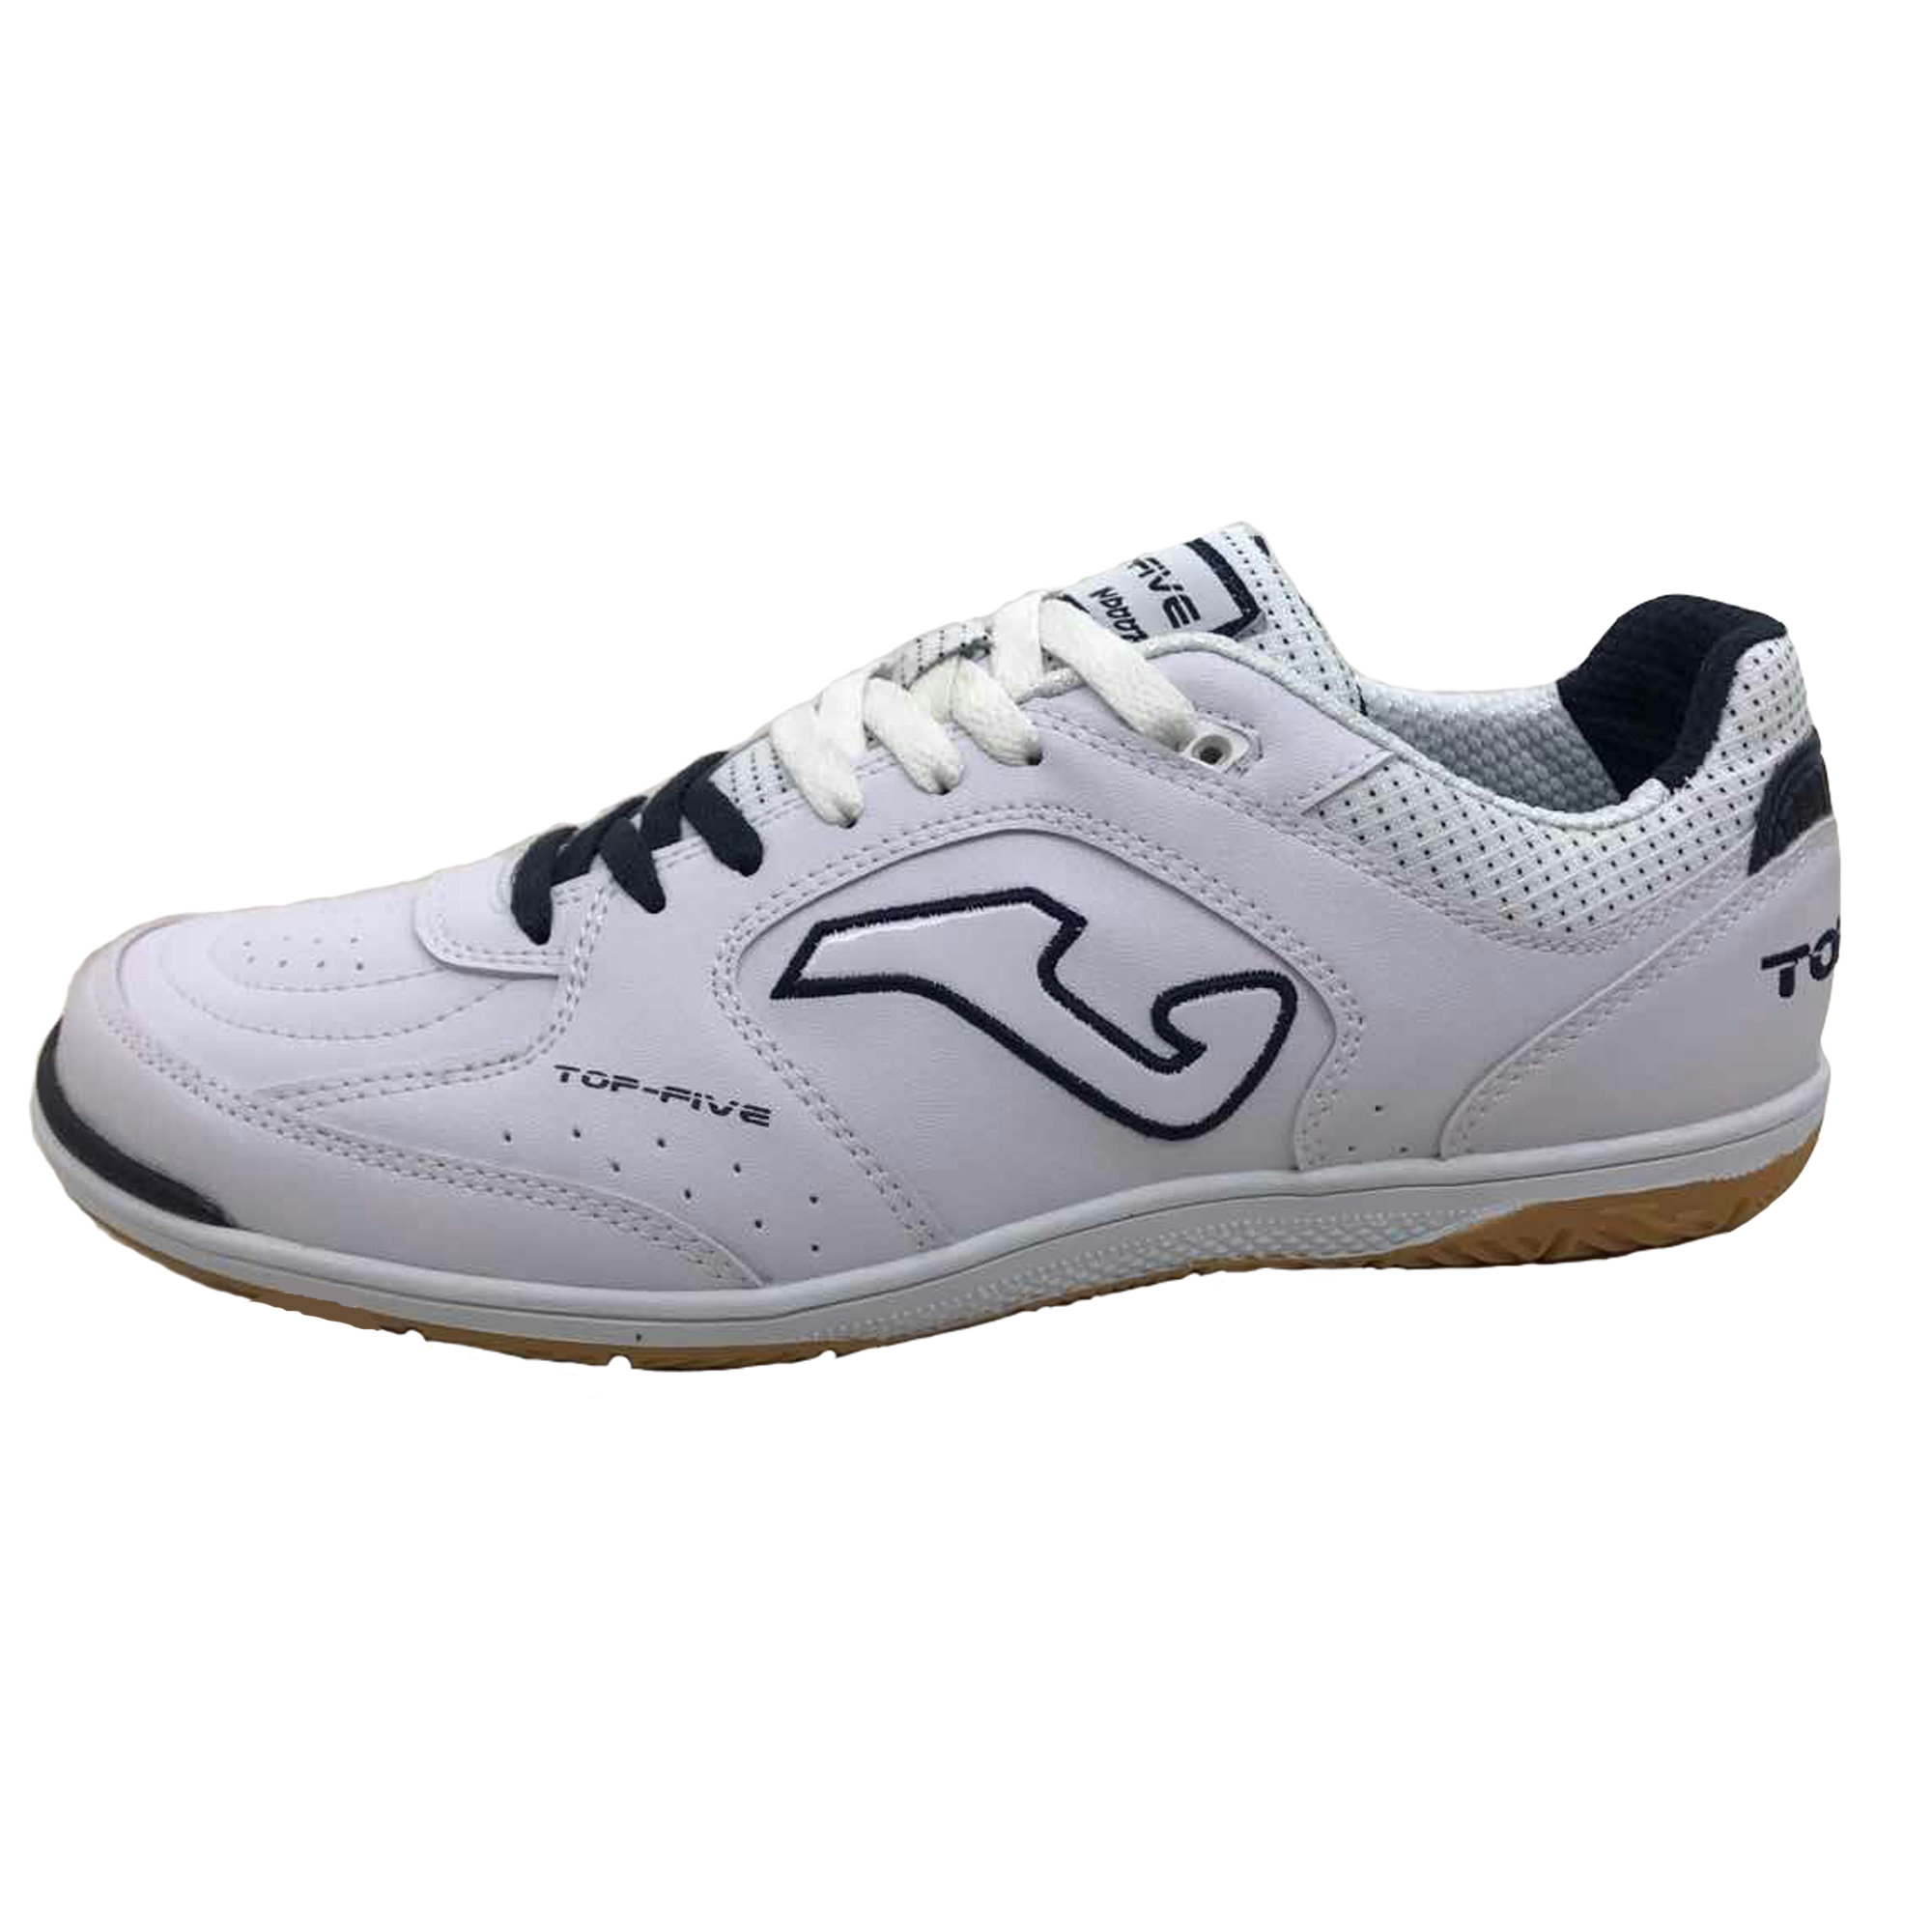 JOMA TOP FIVE TFIVW.702.IN